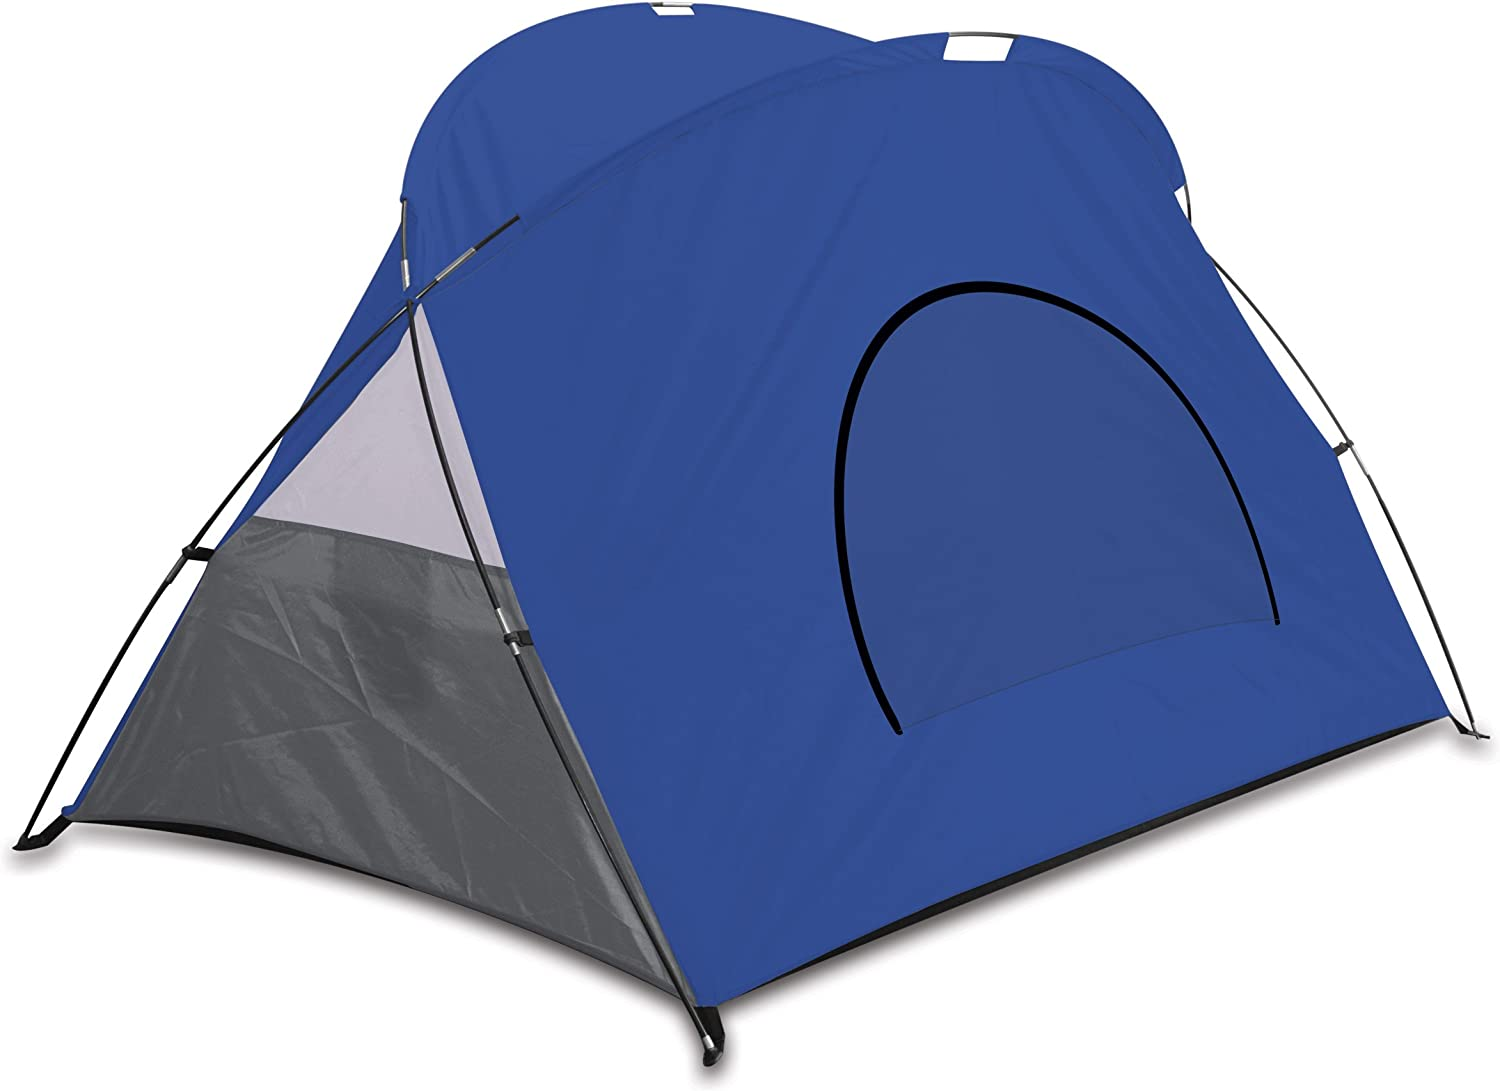 Picnic Time Cove Portable Sun Wind Shelter, bluee